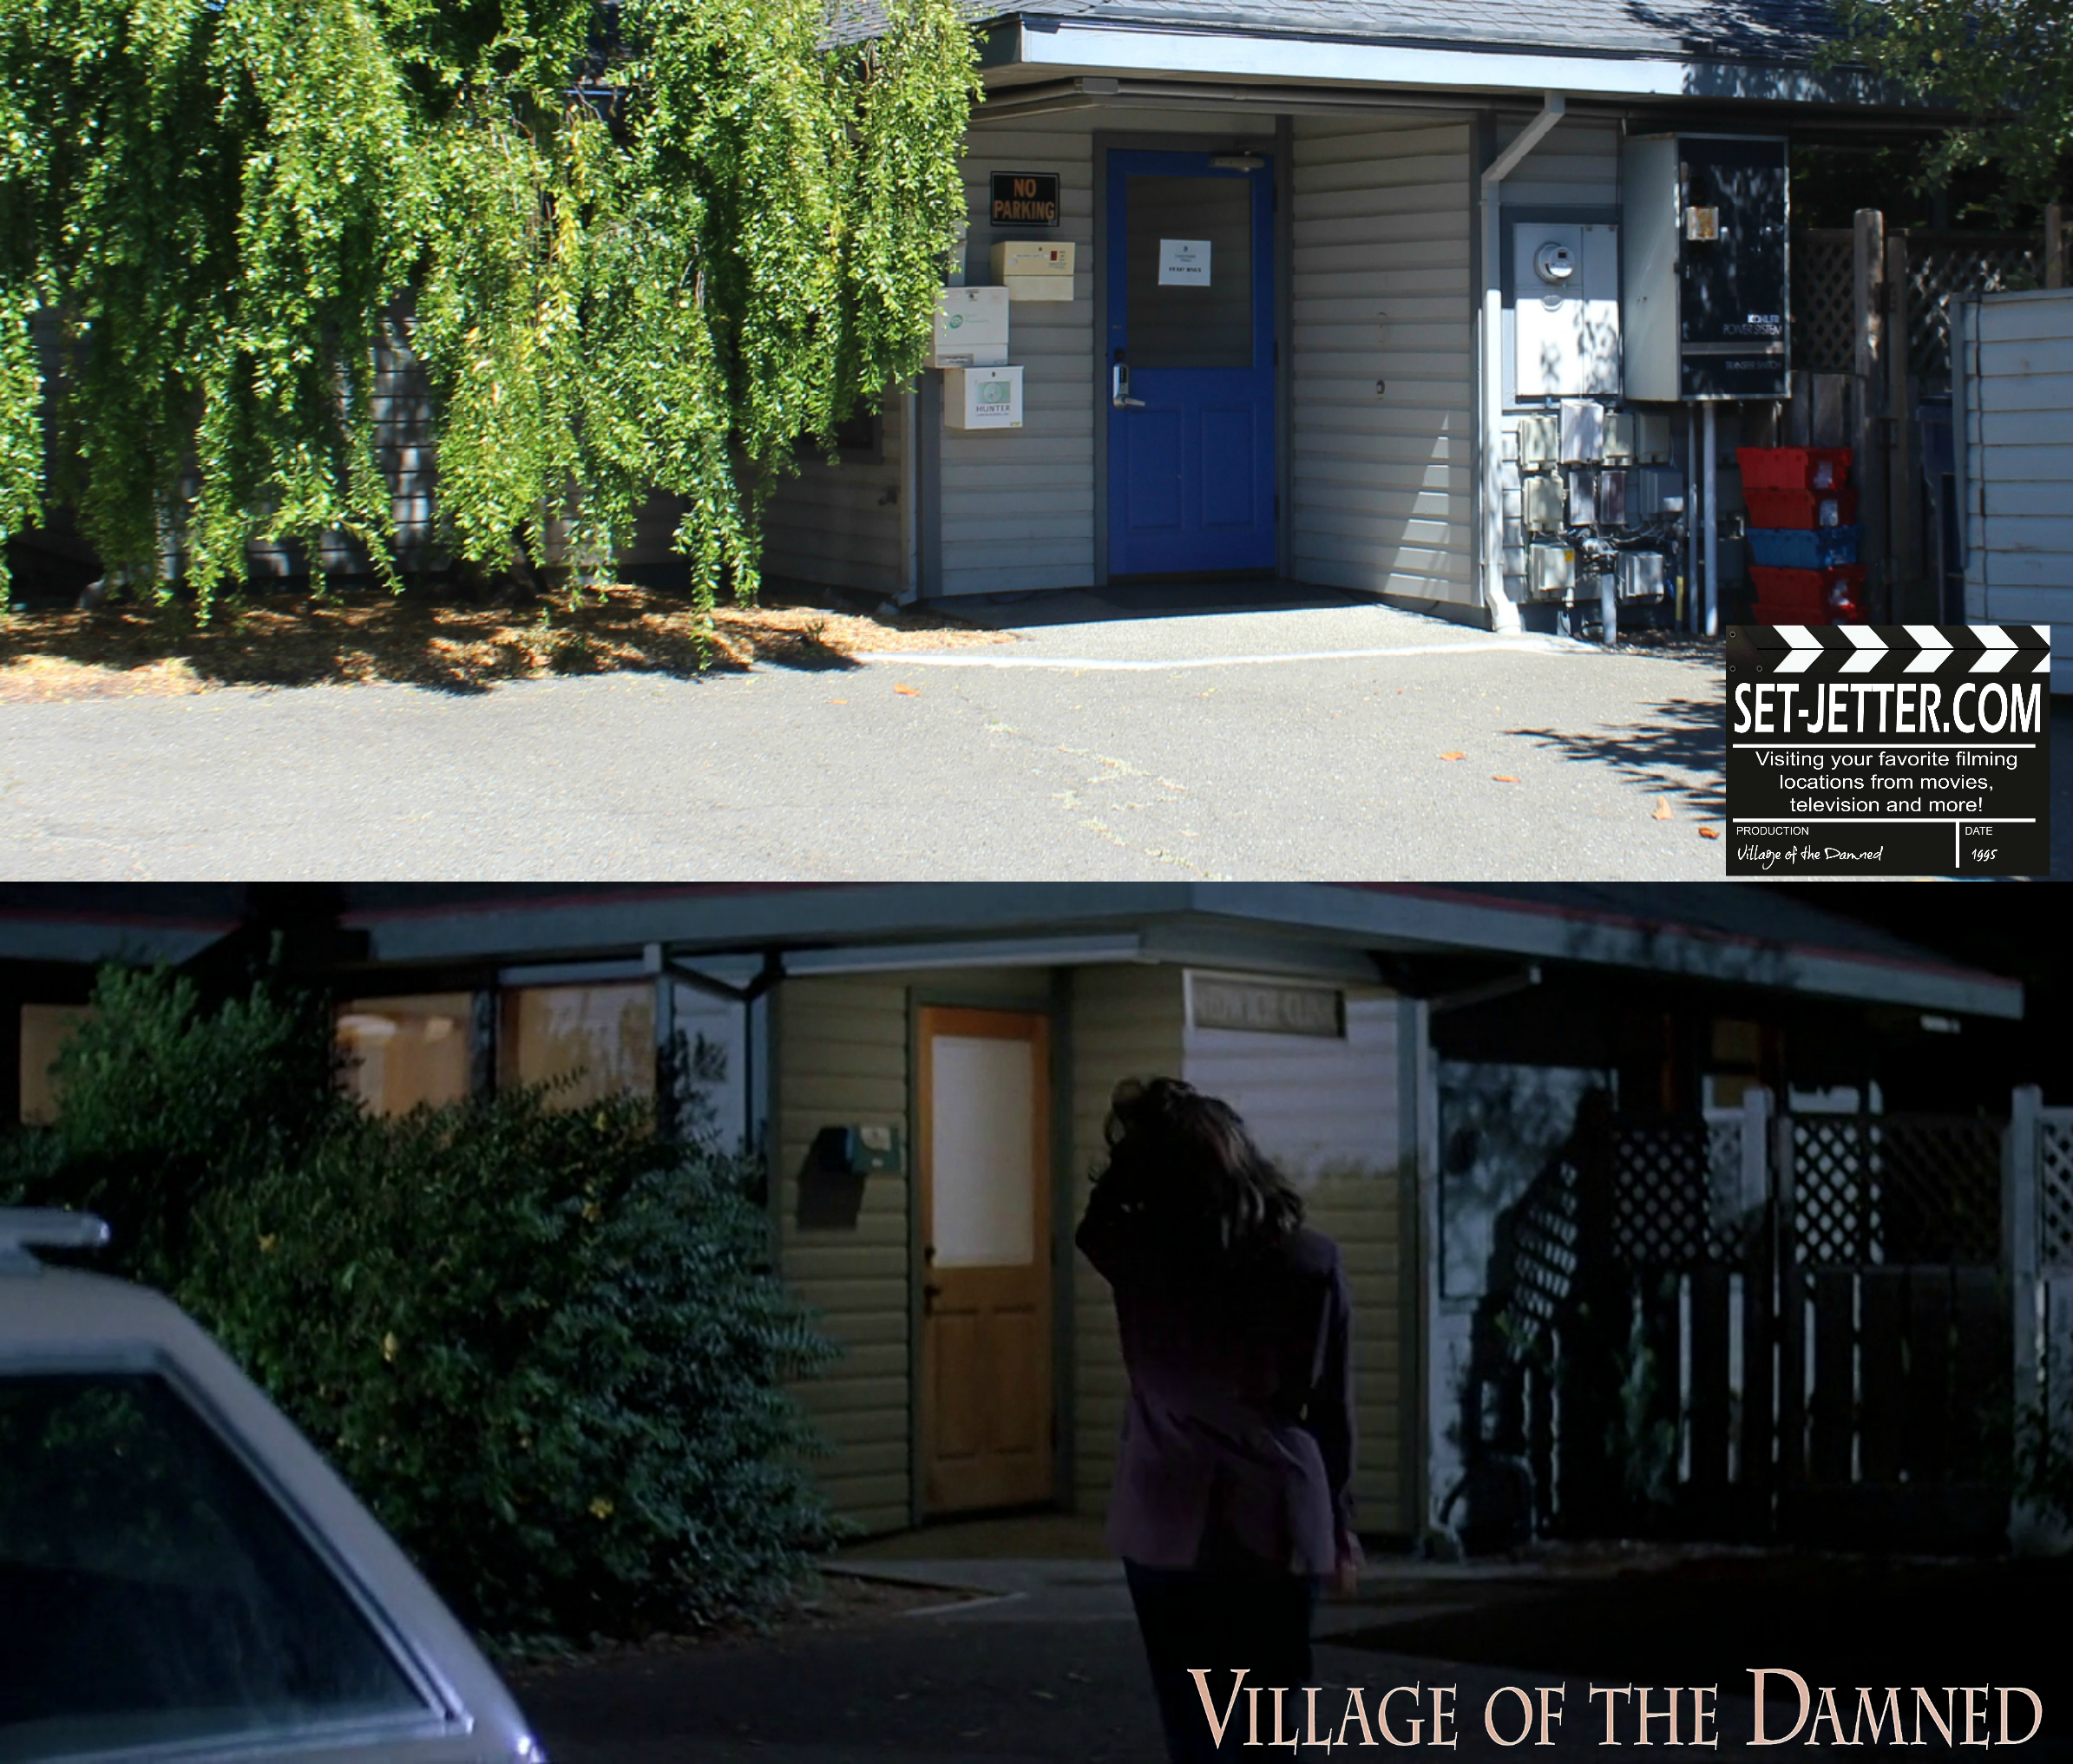 Village of the Damned comparison 138.jpg